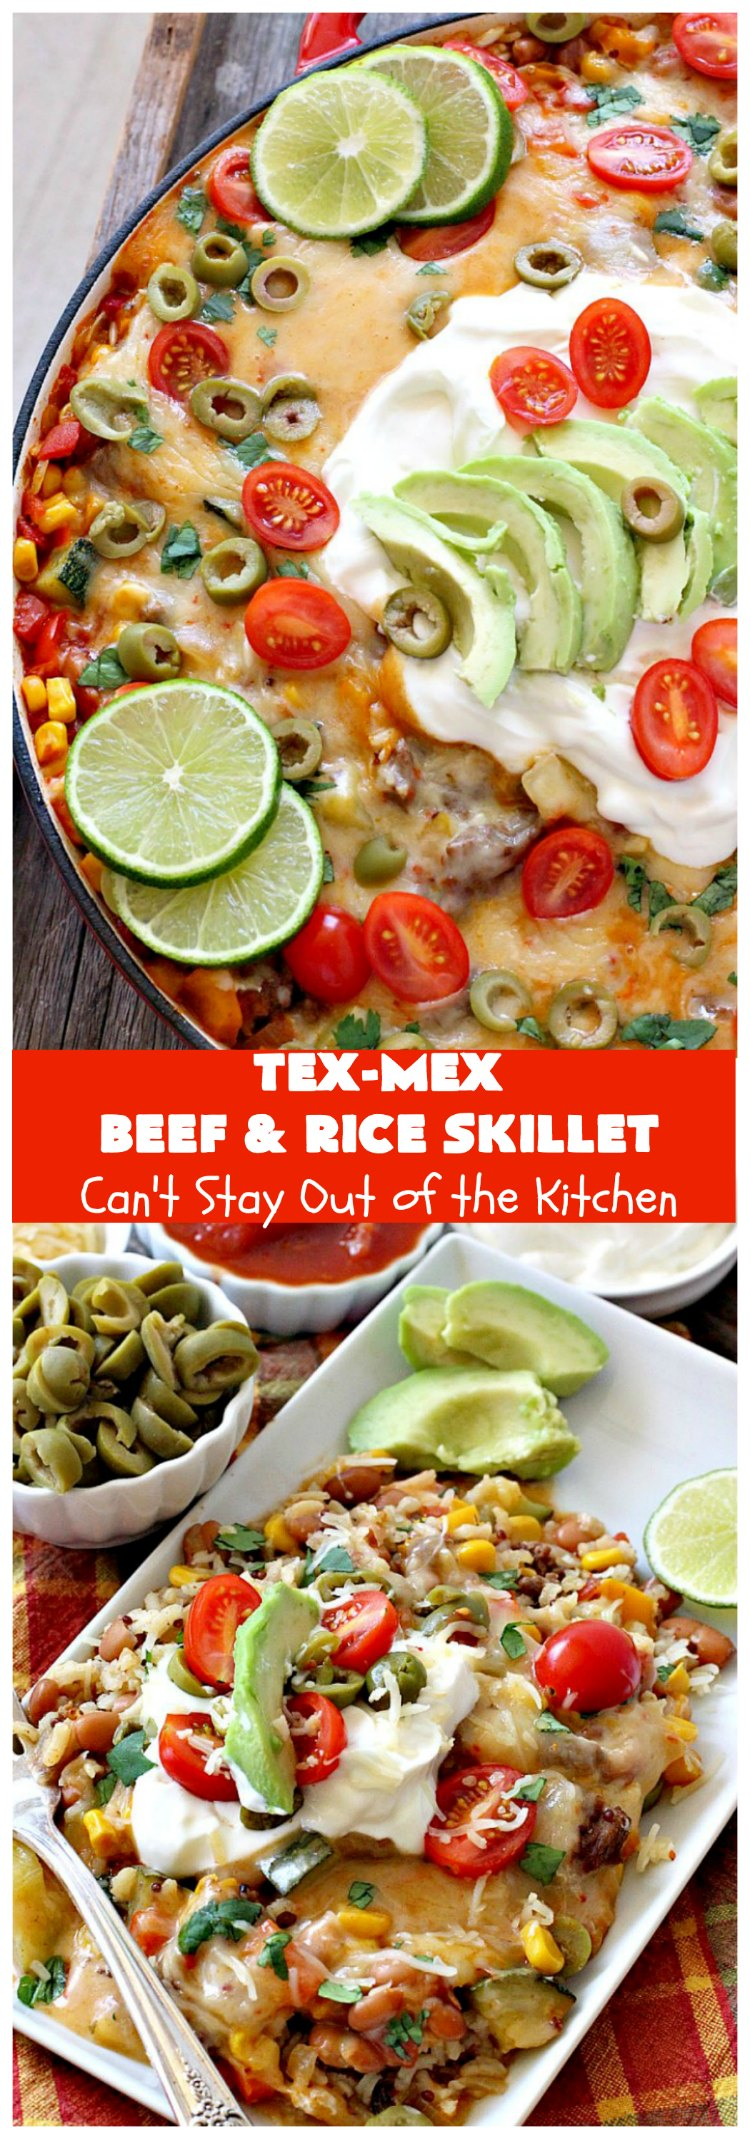 Tex-Mex Beef and Rice Skillet | Can't Stay Out of the Kitchen | this fantastic #TexMex meal takes only   30 minutes to prepare! It's loaded with toppings that add incredible flavor. Filled with healthy veggies, #beans & #rice. #GlutenFree #TexMexBeansAndRiceSkillet